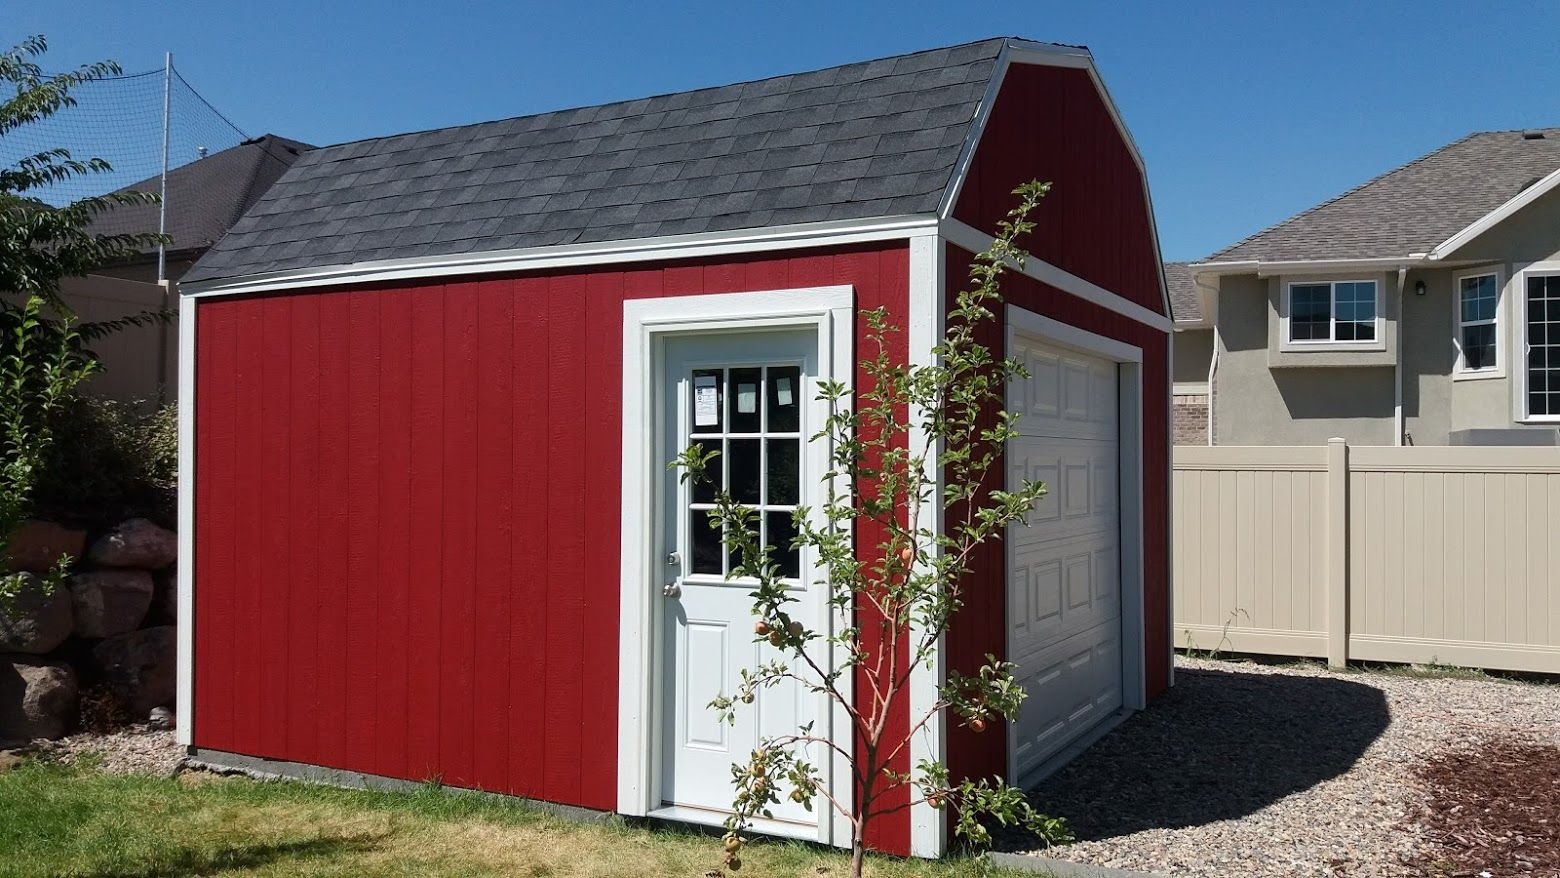 Garden Sheds 14 X 14 X 12 Barn Style Garage Door Loft Include Www Shedsbuilders Com Lehi Utah Shed Builders Backyard Buildings Custom Sheds